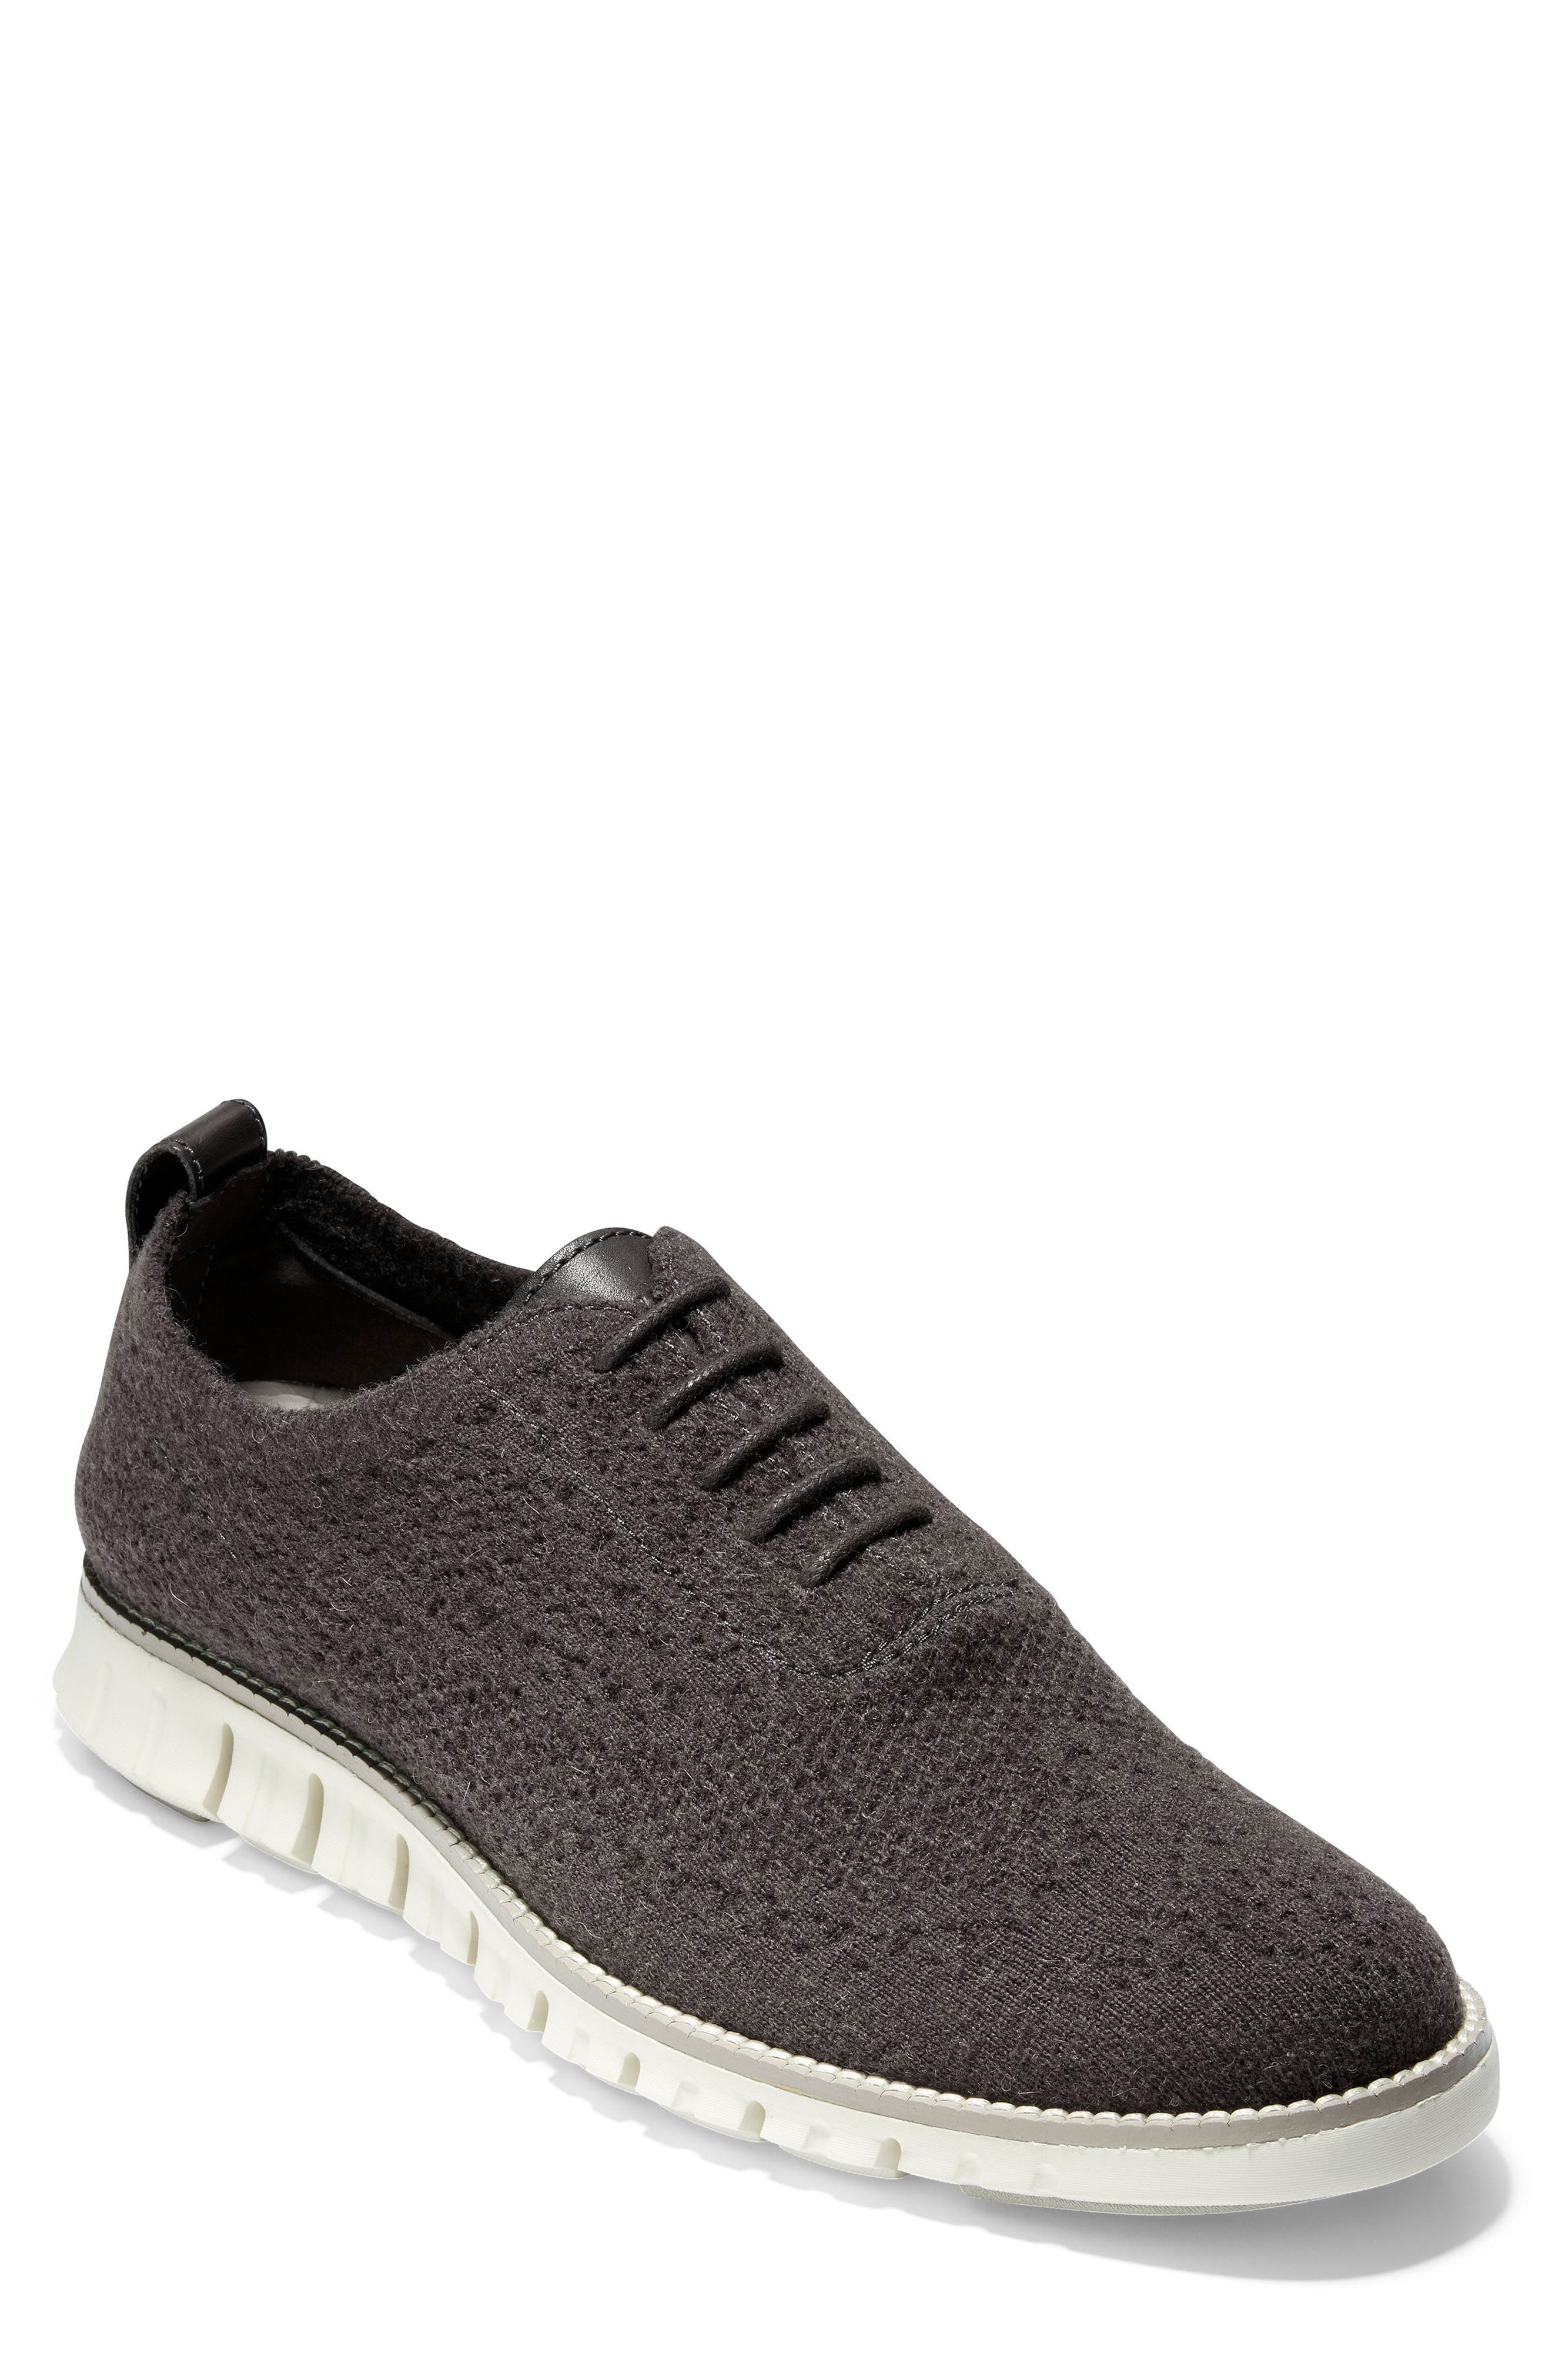 ZeroGrand Stitchlite<sup>™</sup> Water Resistant Wool Oxford,                         Main,                         color, DARK ROAST WOOL KNIT/ IVORY